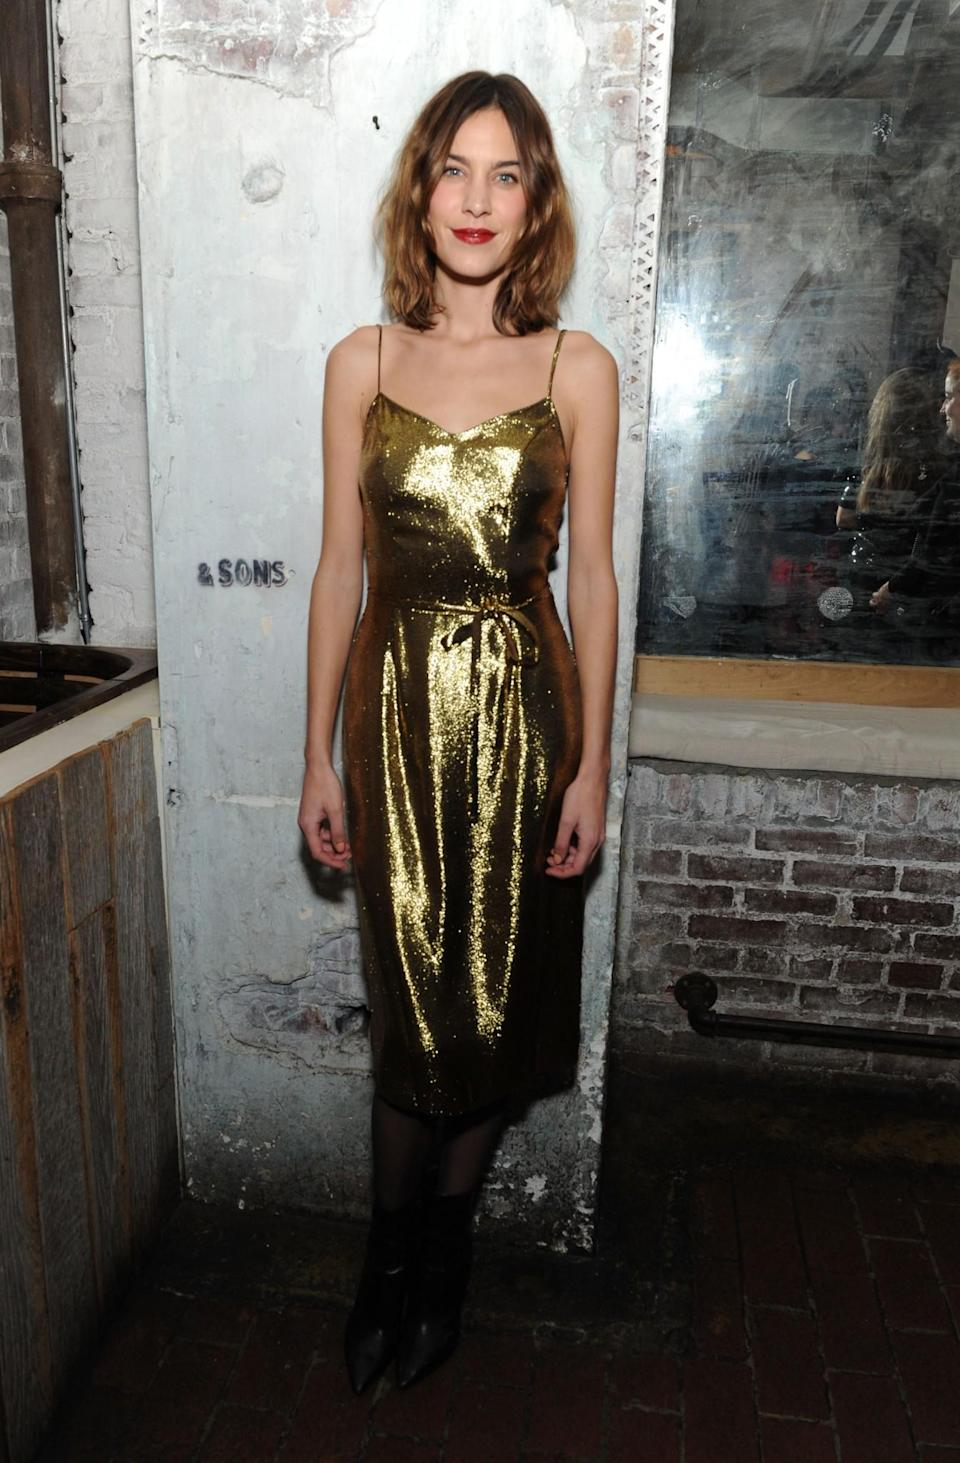 <p>Leave it to Alexa to show us how to do festive dressing with very little effort. A slinky metallic dress, some hair product and a great lippy is all it takes to be the belle of the ball. [Photo: Getty] </p>